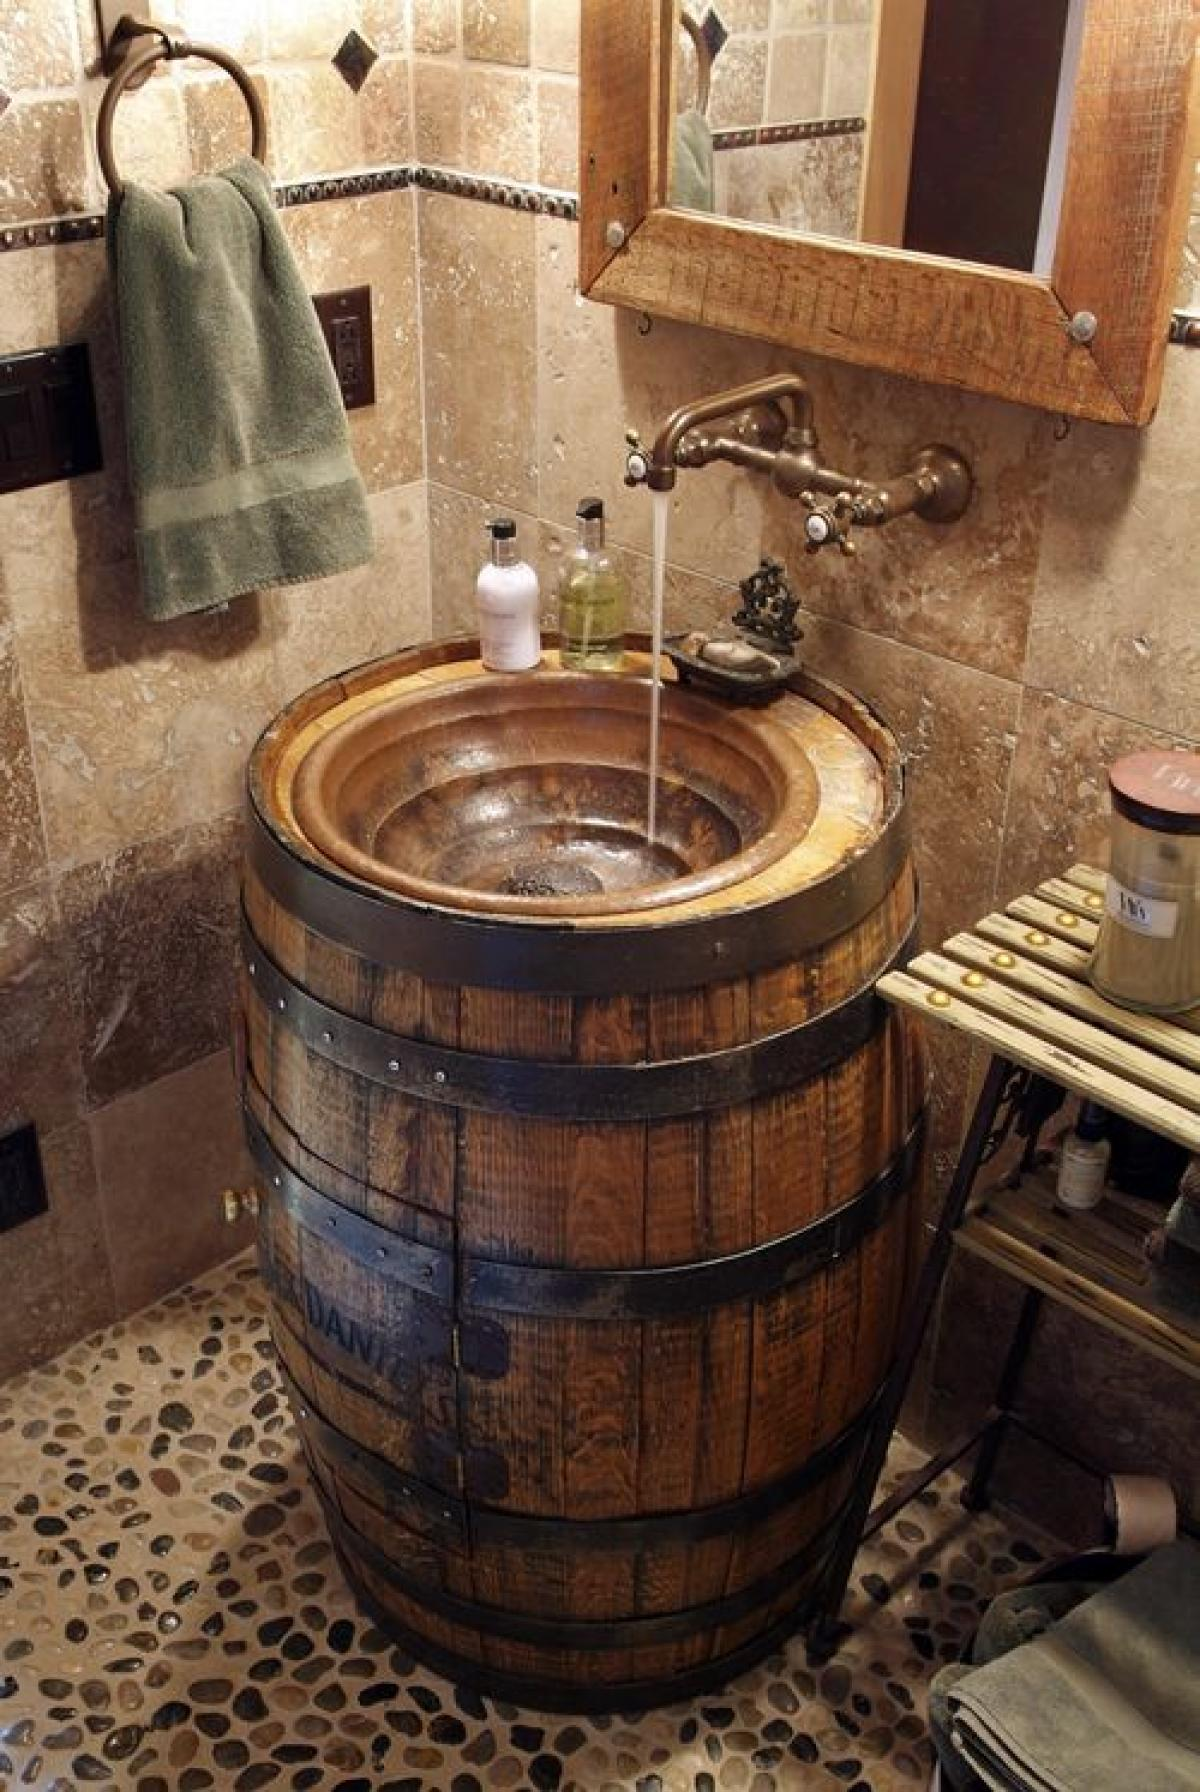 Bathroom Decorating Ideas Rustic best rustic bathroom decor ideas - home ideas design - cerpa